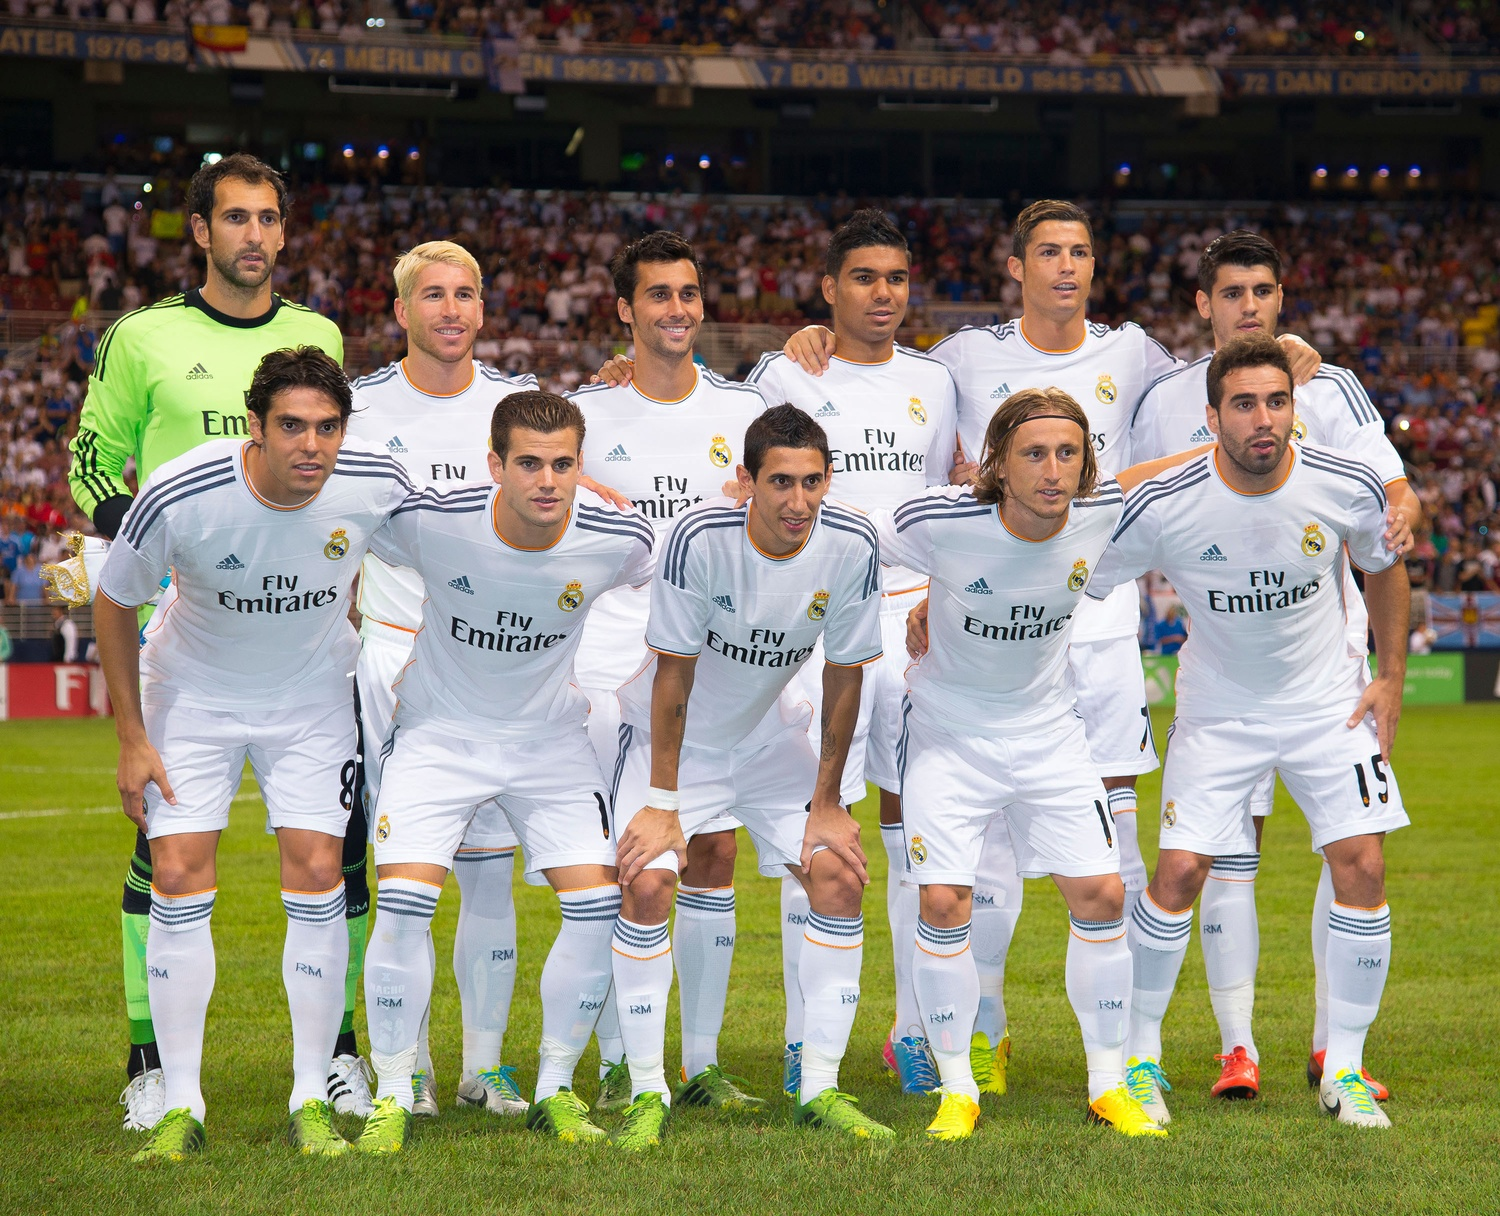 real madrid team 2014 1500x1216 download hd wallpaper wallpapertip real madrid team 2014 1500x1216